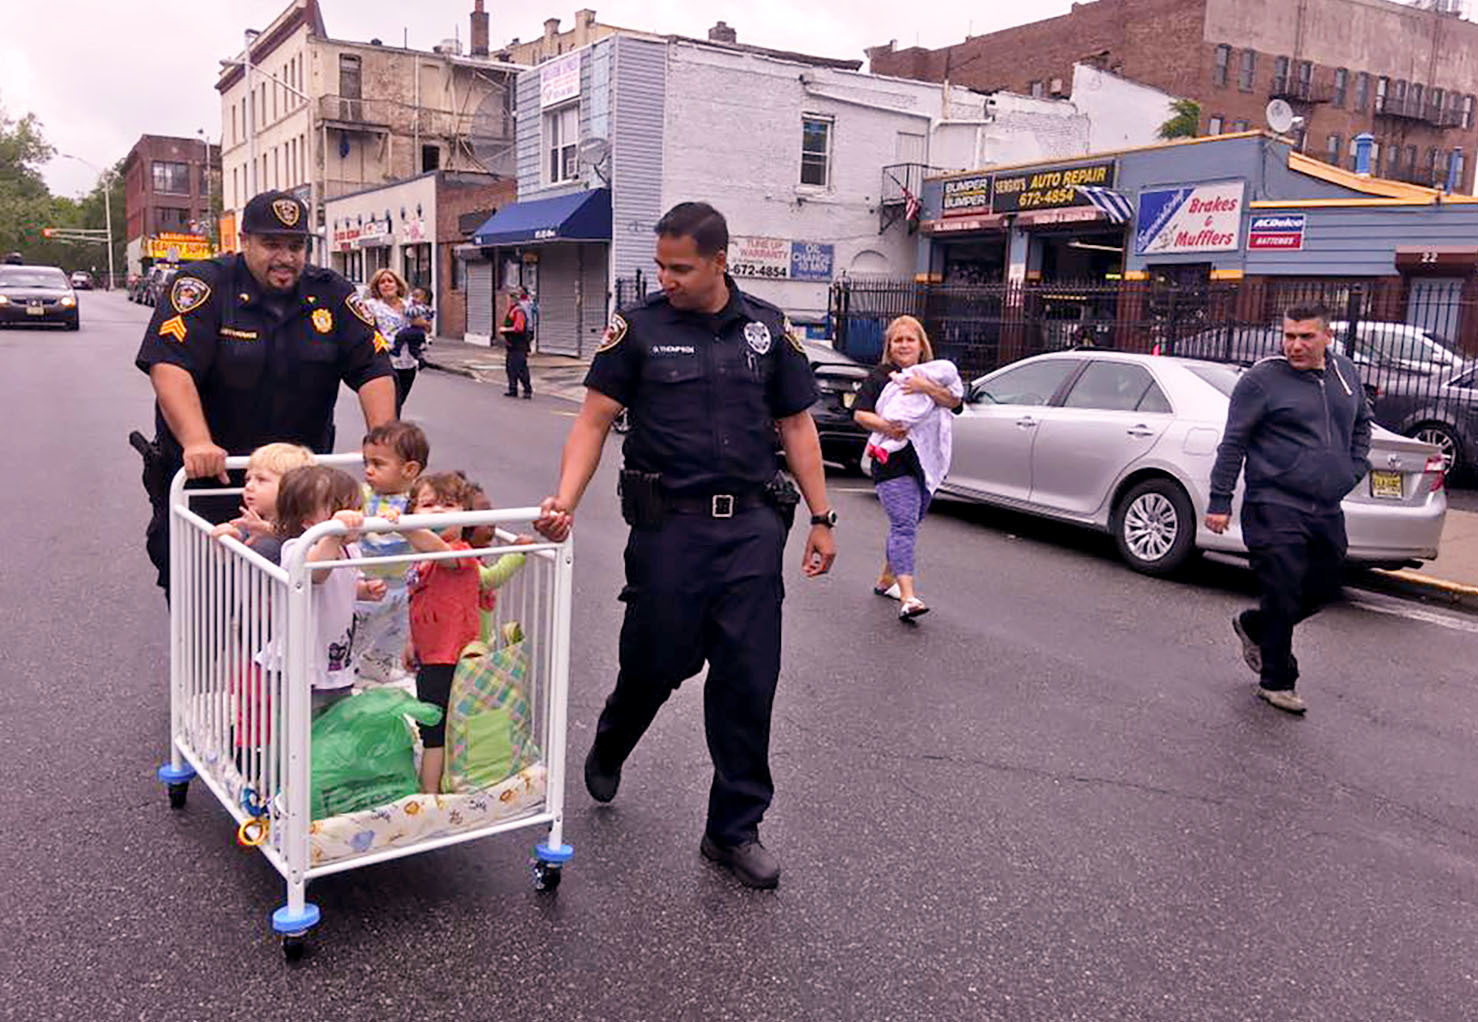 Two police officers walking with children in a crib on wheels